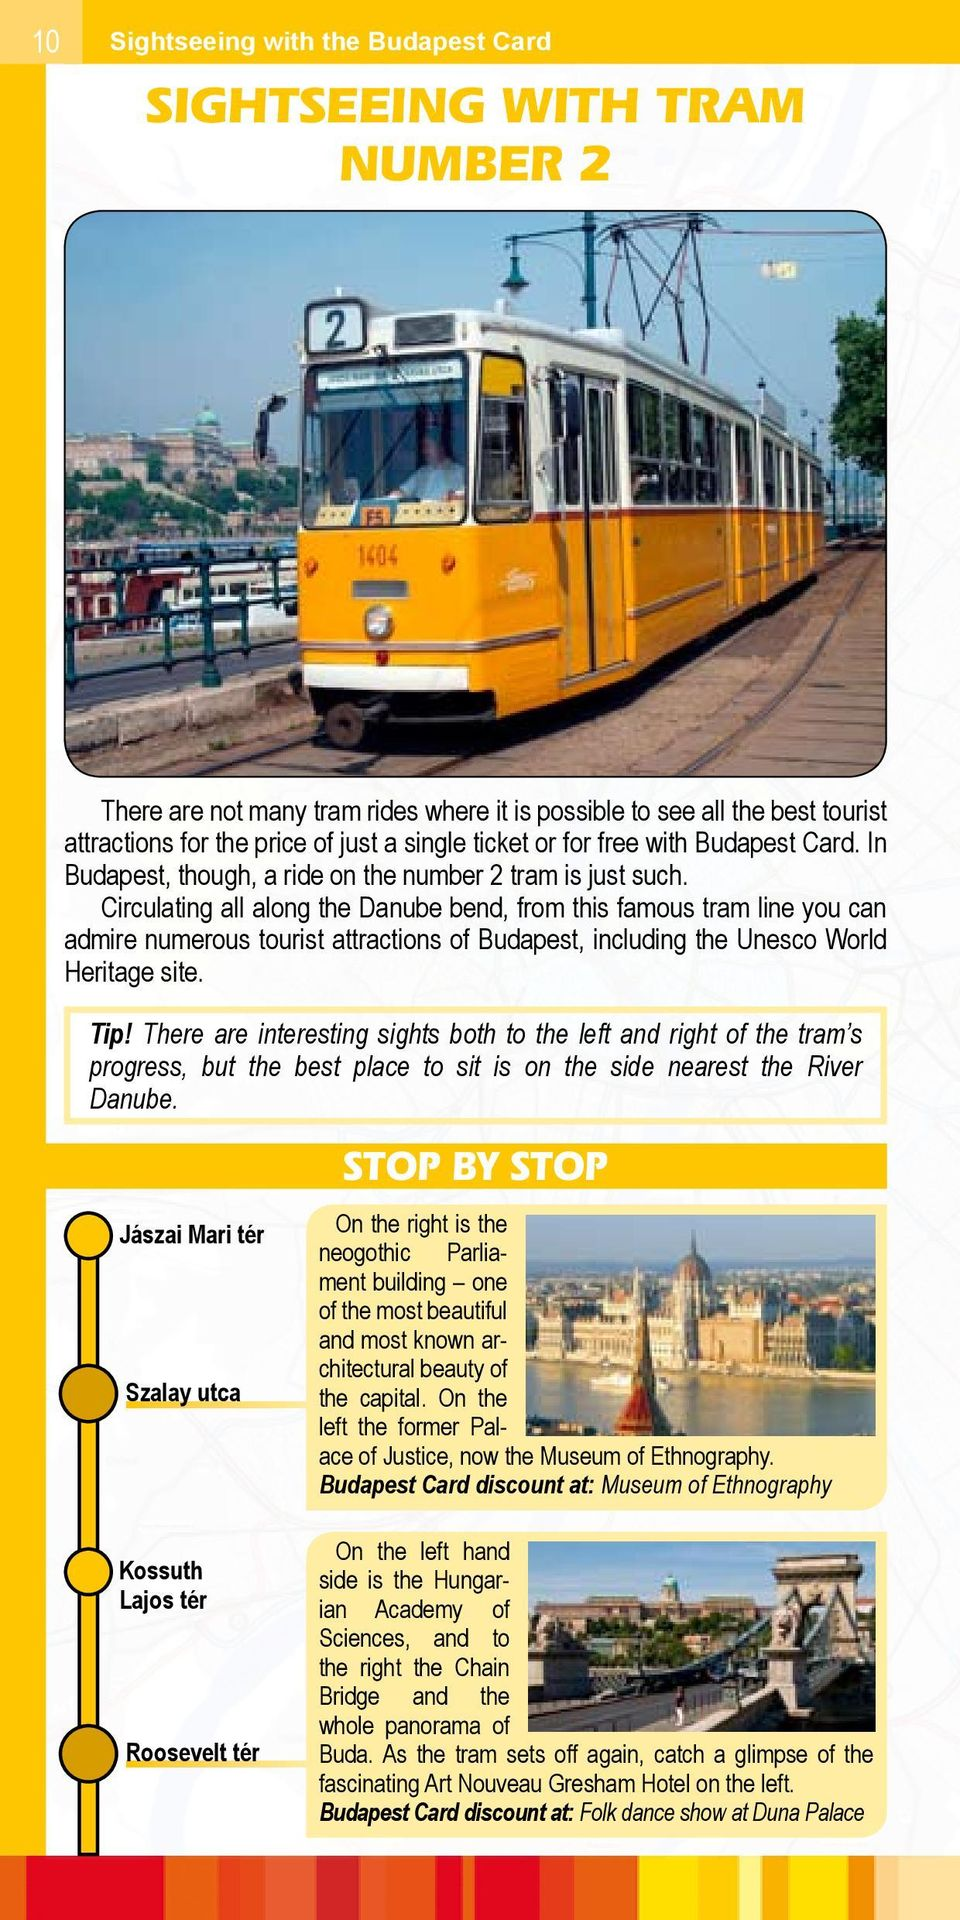 Circulating all along the Danube bend, from this famous tram line you can admire numerous tourist attractions of Budapest, including the Unesco World Heritage site. Tip!